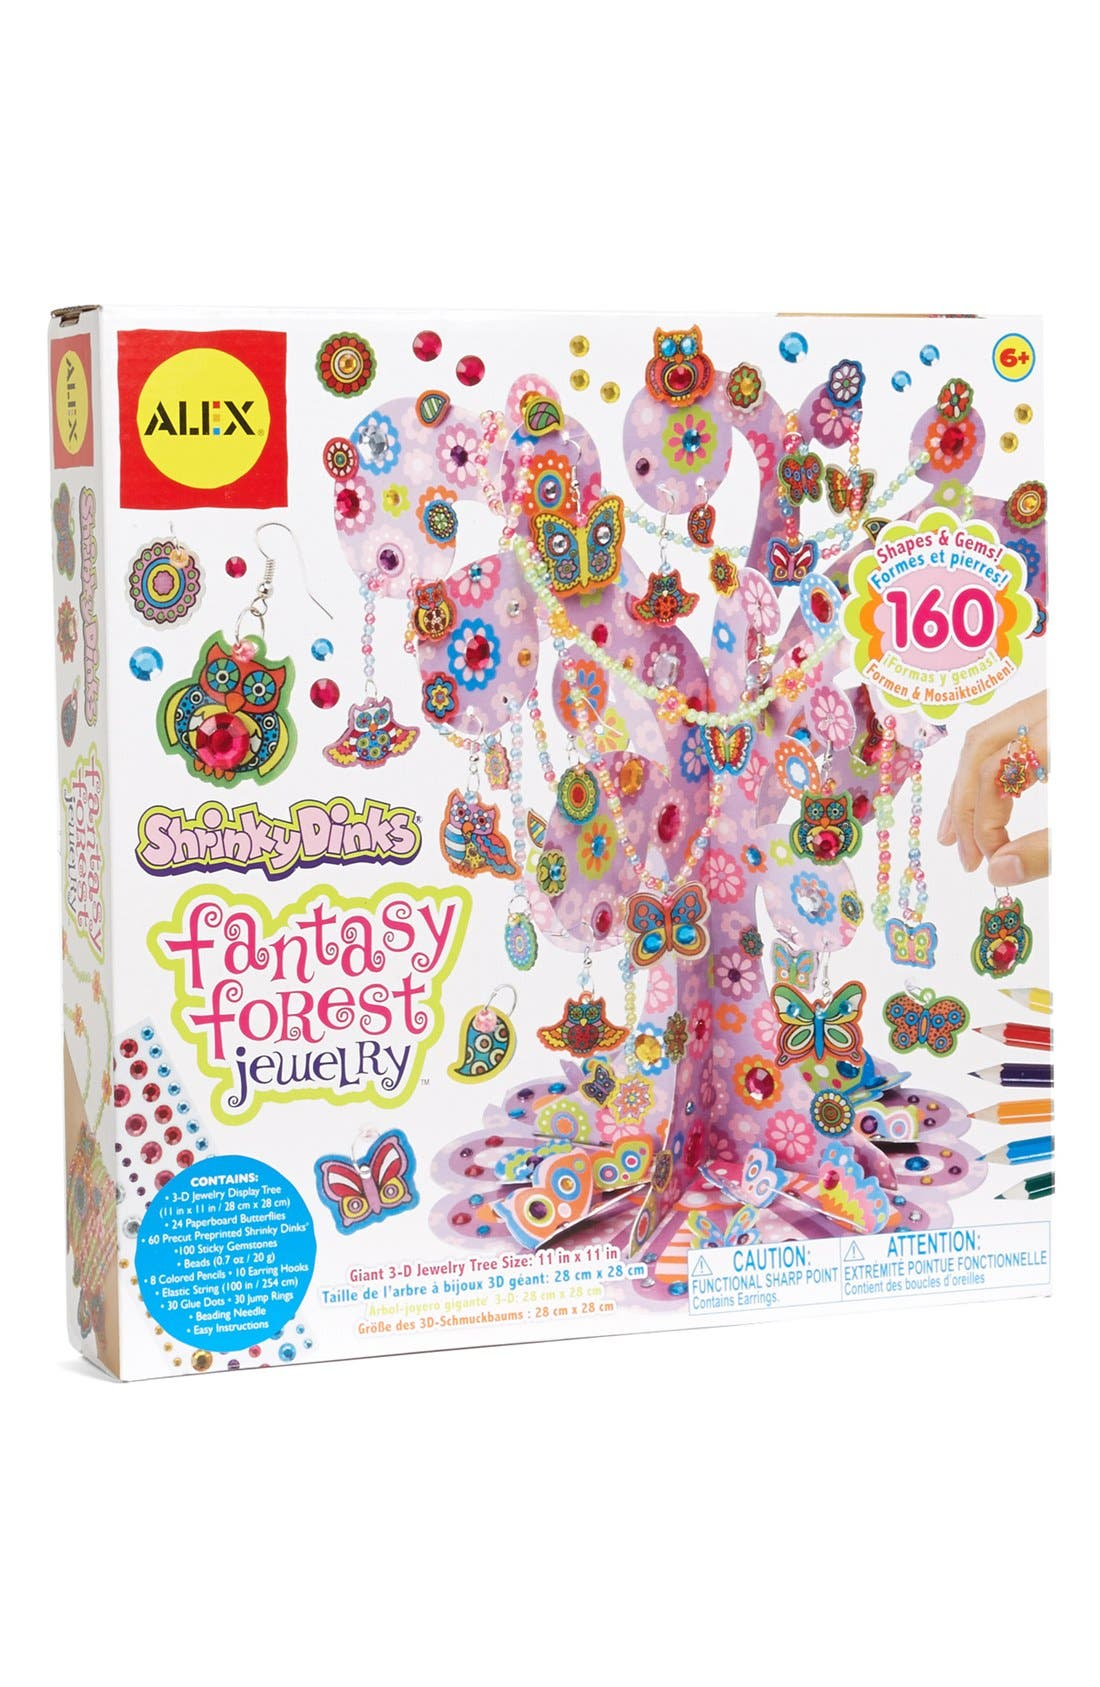 Alternate Image 1 Selected - Alex® Toys 'Fantasy Forest' Jewelry Making Kit with Shrinky Dinks®